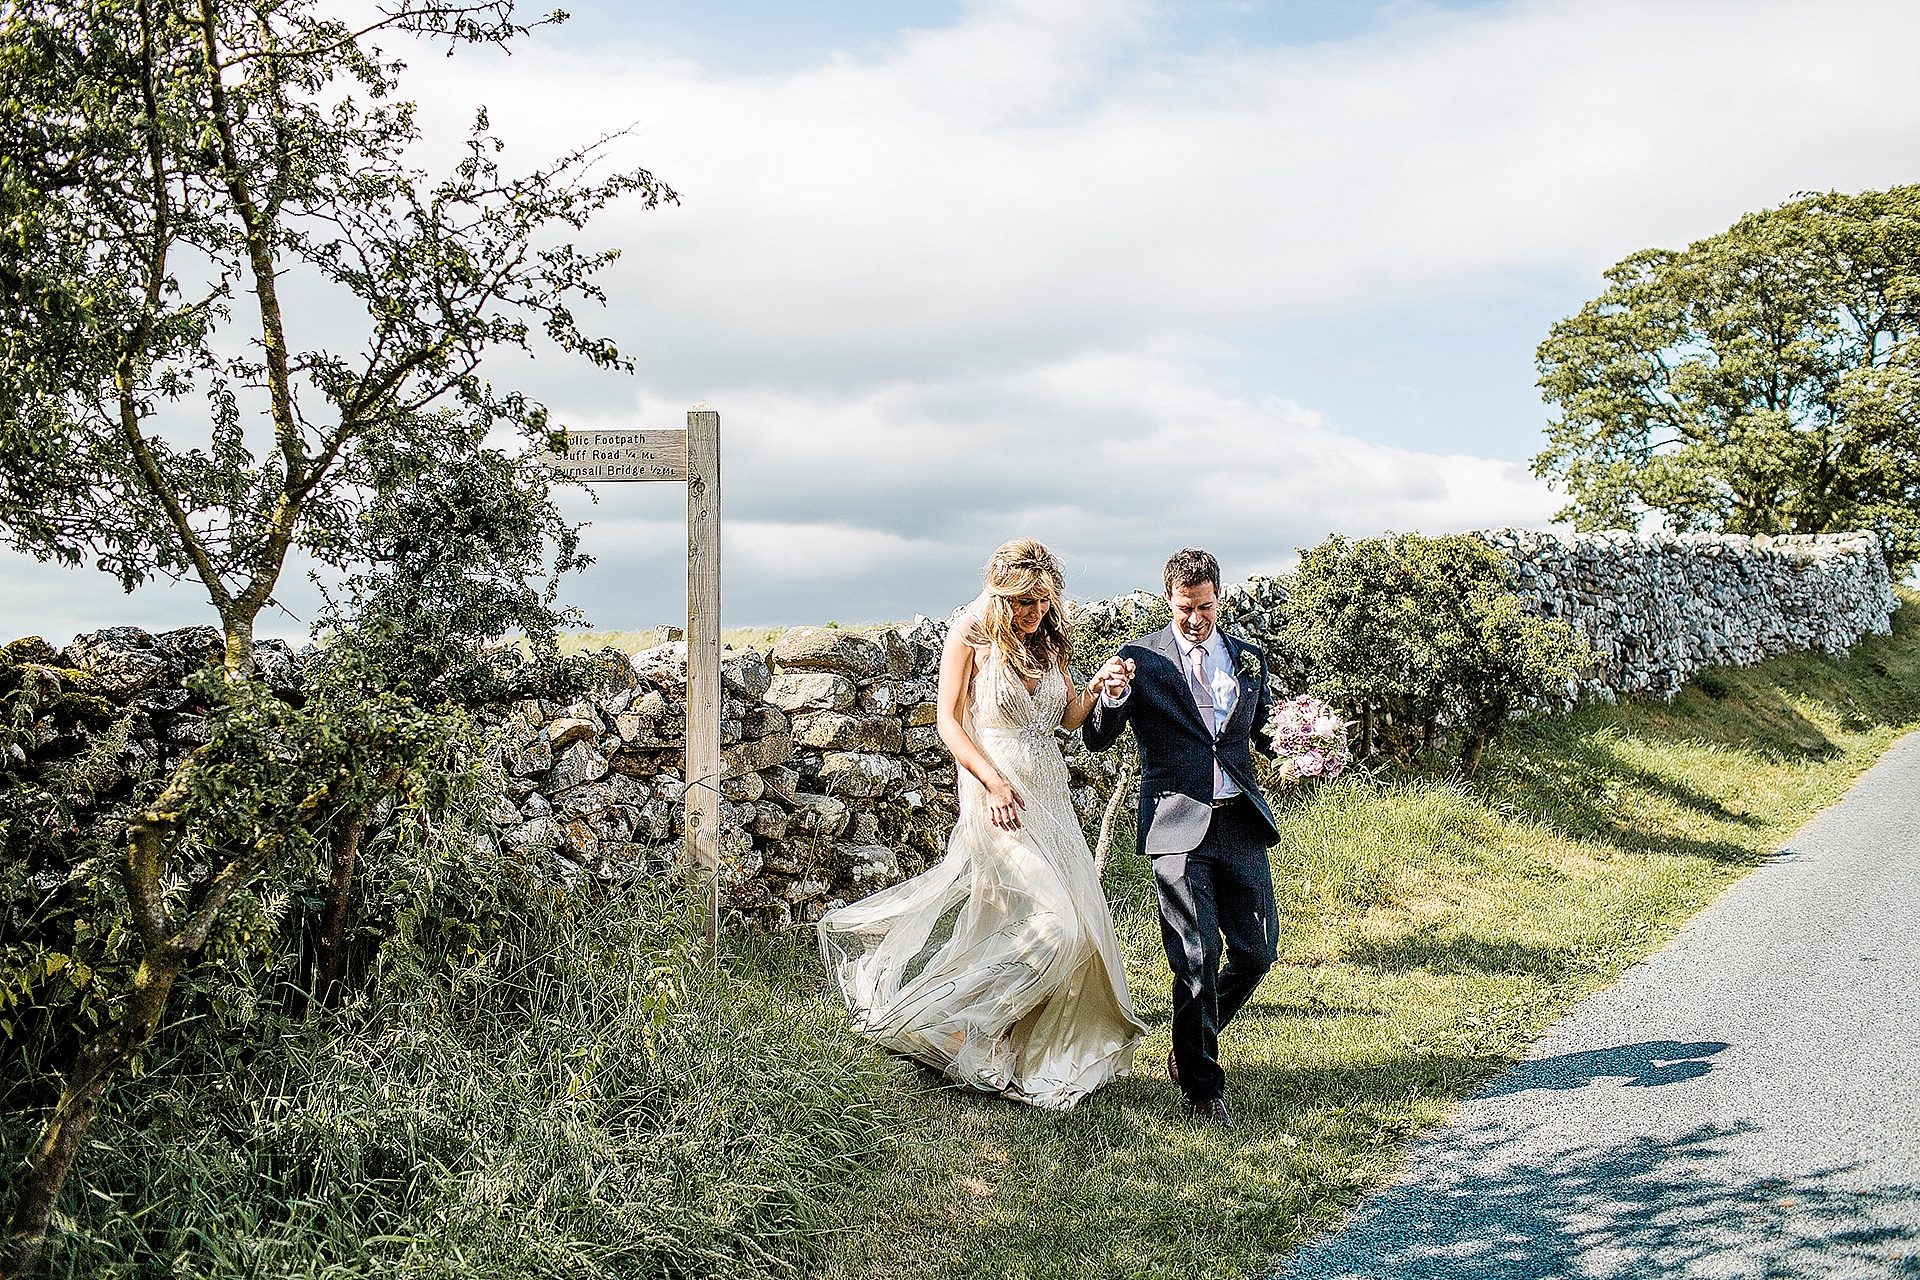 Red Lion Wedding in The Yorkshire Dales from John Day Photography